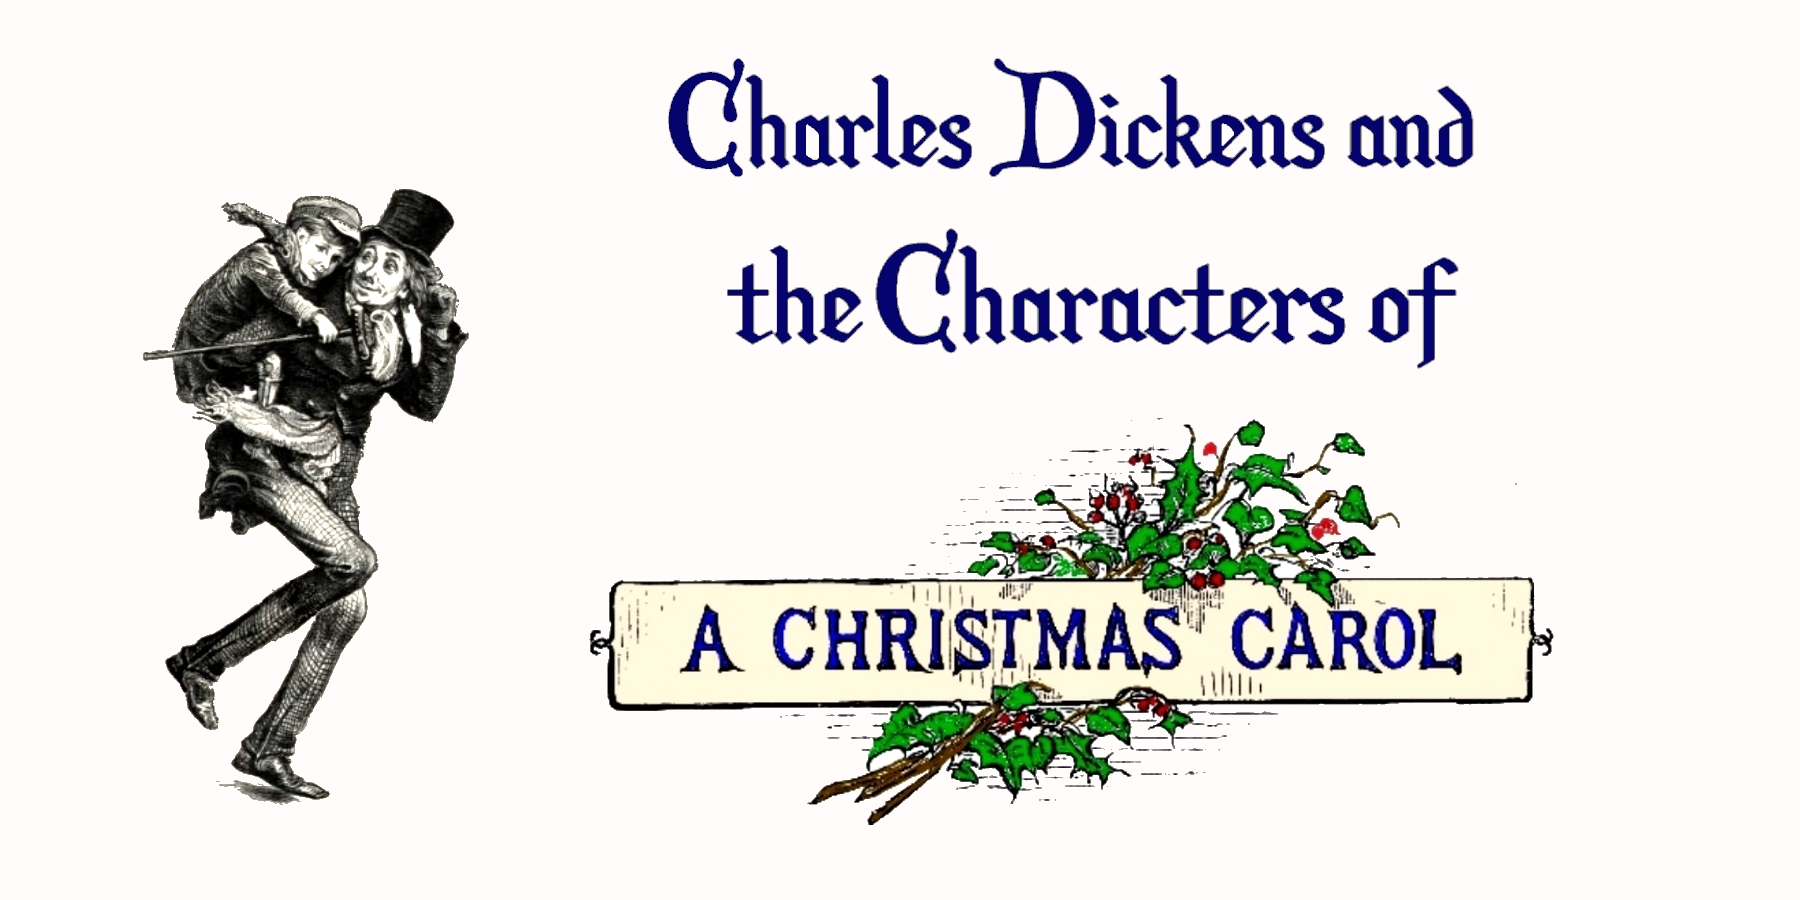 Charles Dickens And The Characters Of A Christmas Carol